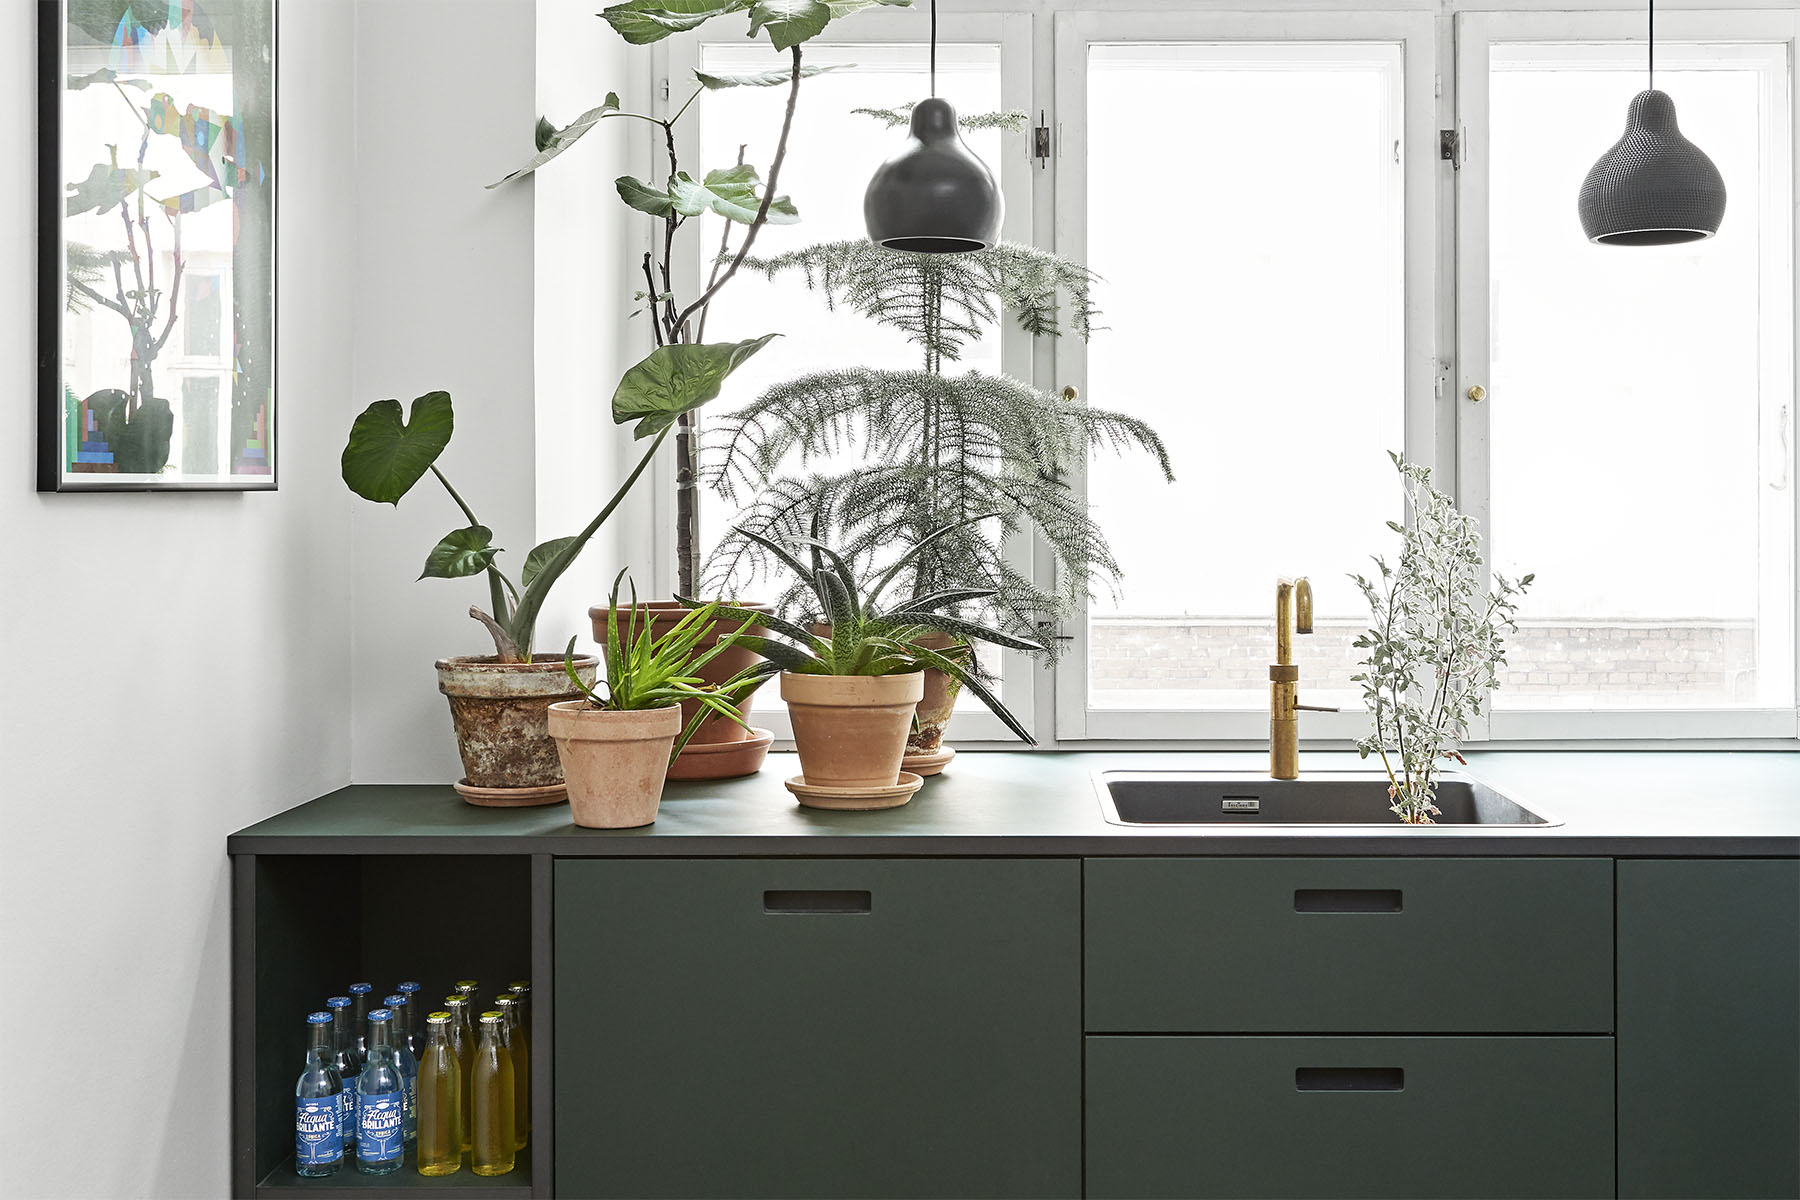 ikeahack-designerkøkken-nye-fronter-and-shufl-linoleum-conifer-kitchen-linoeum-front-for-ikeakitchen